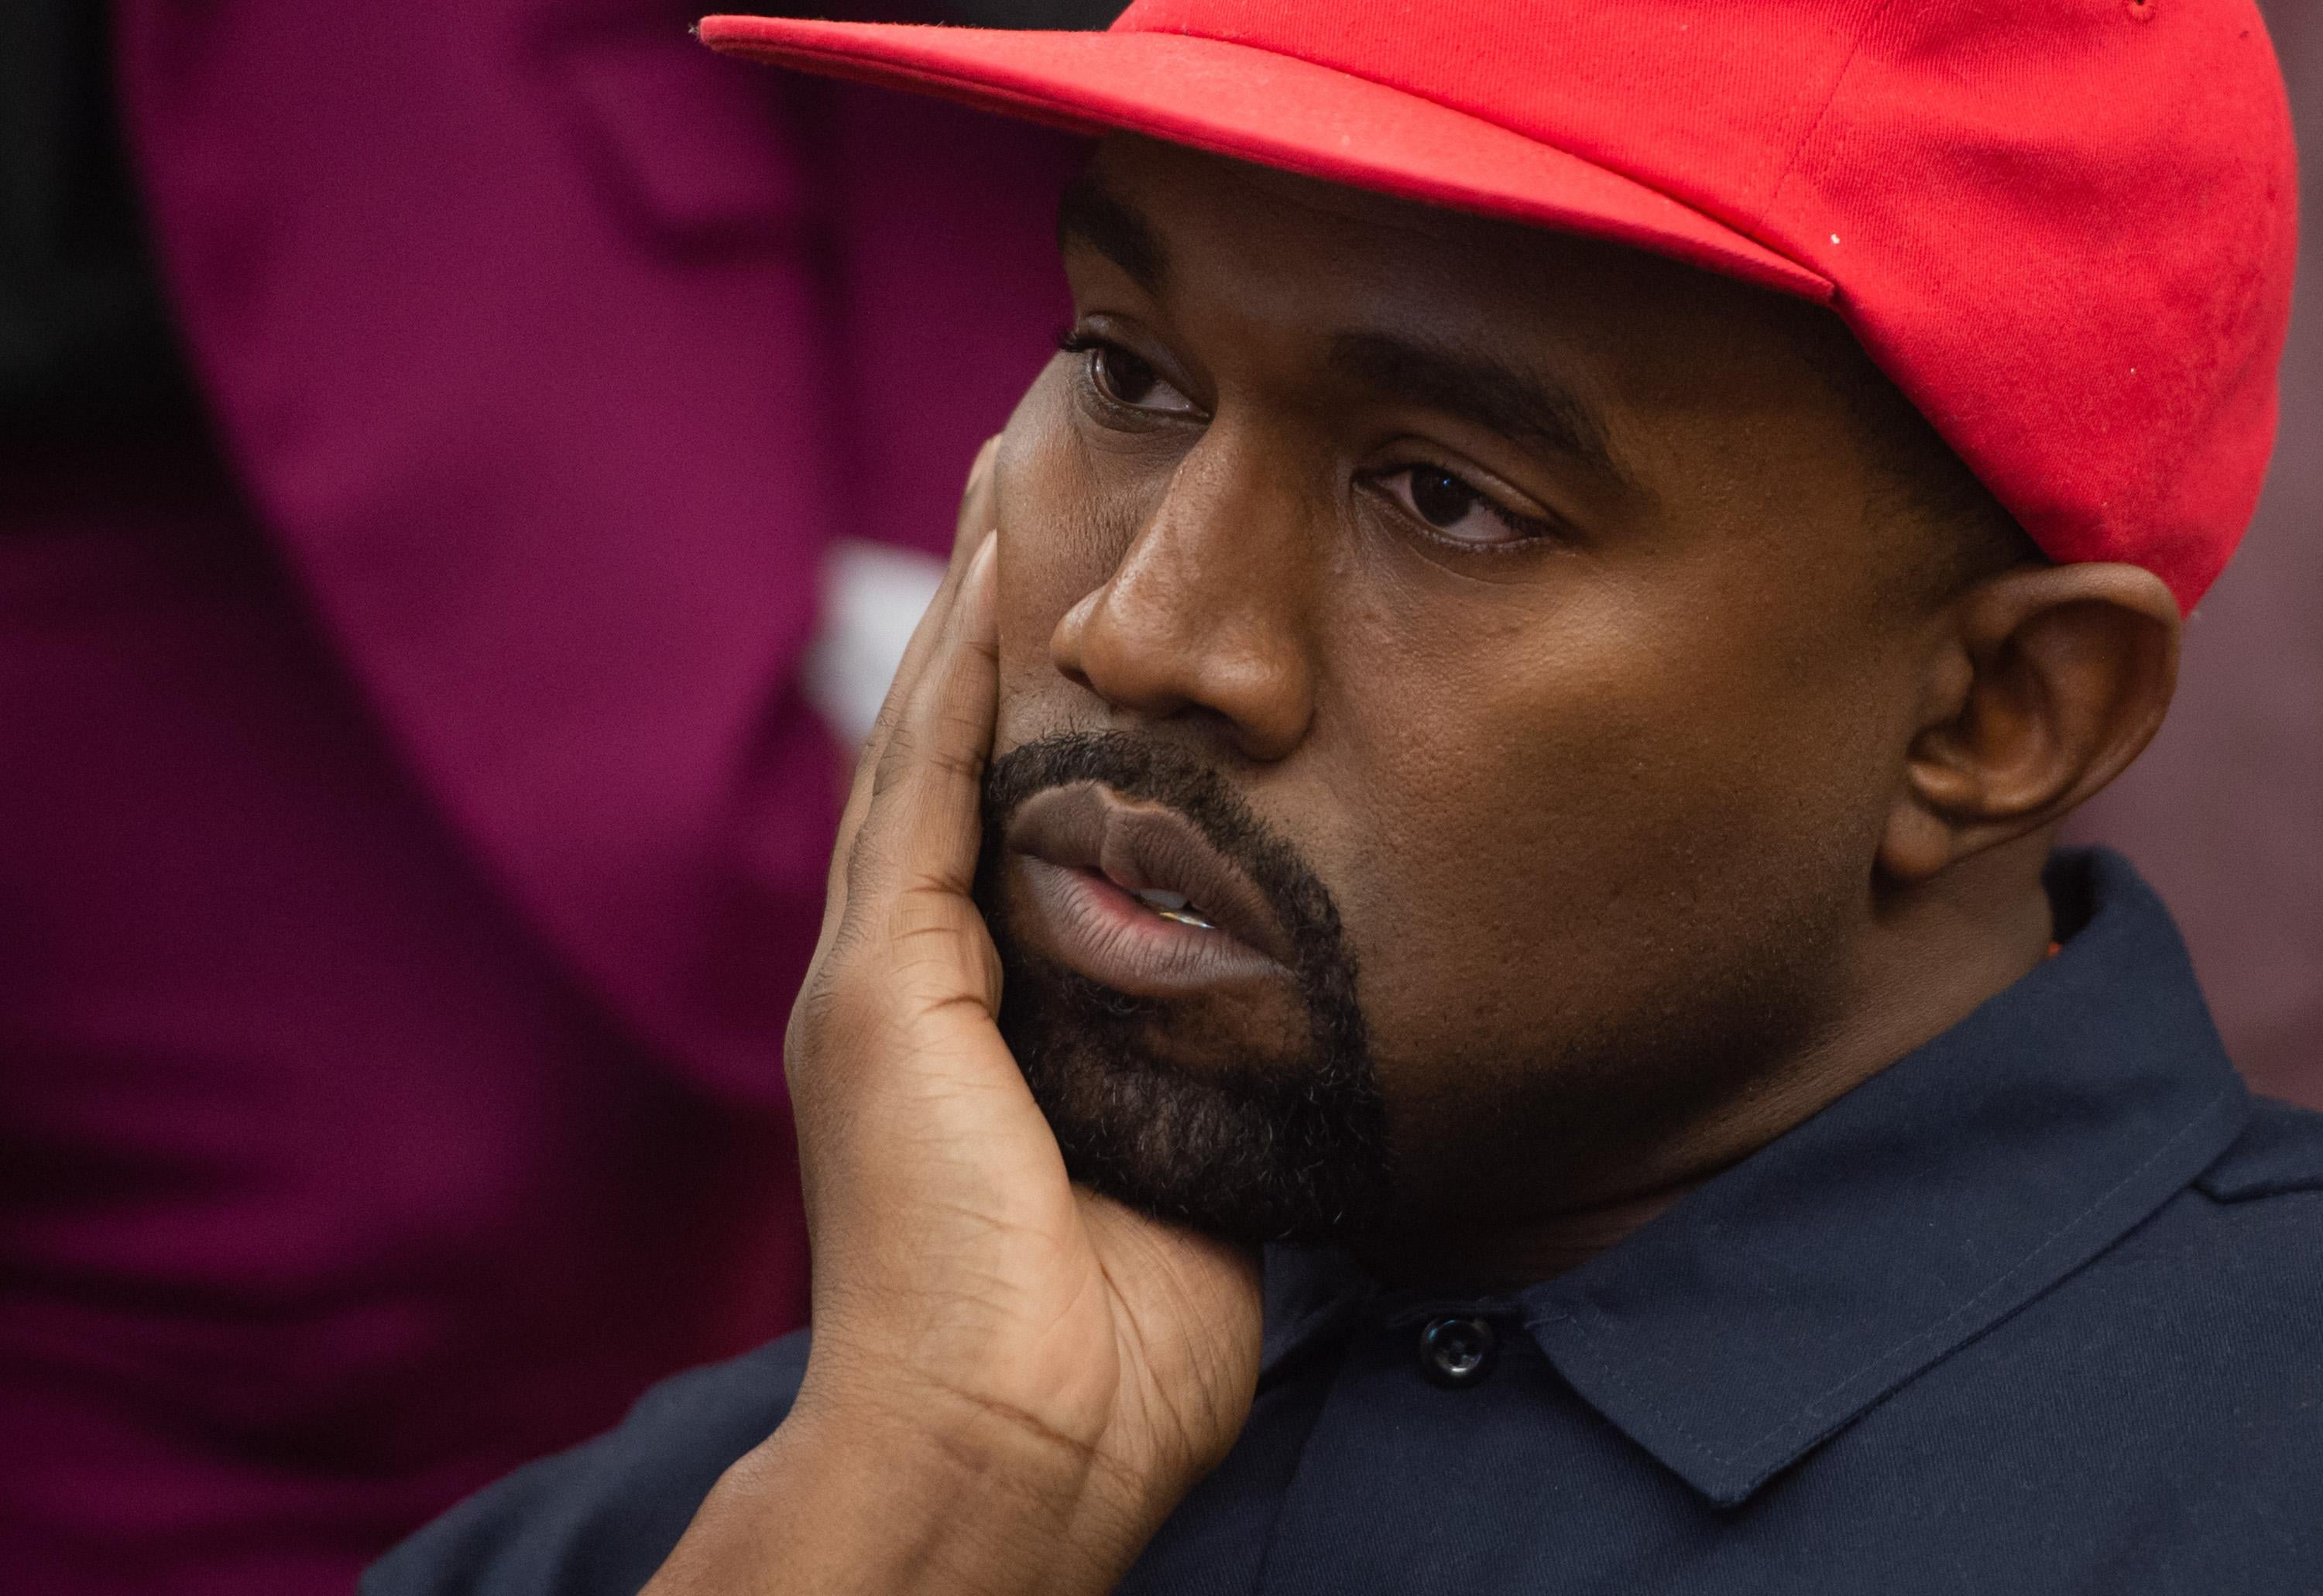 Kanye West wears a red hat and holds his hand to his cheek.